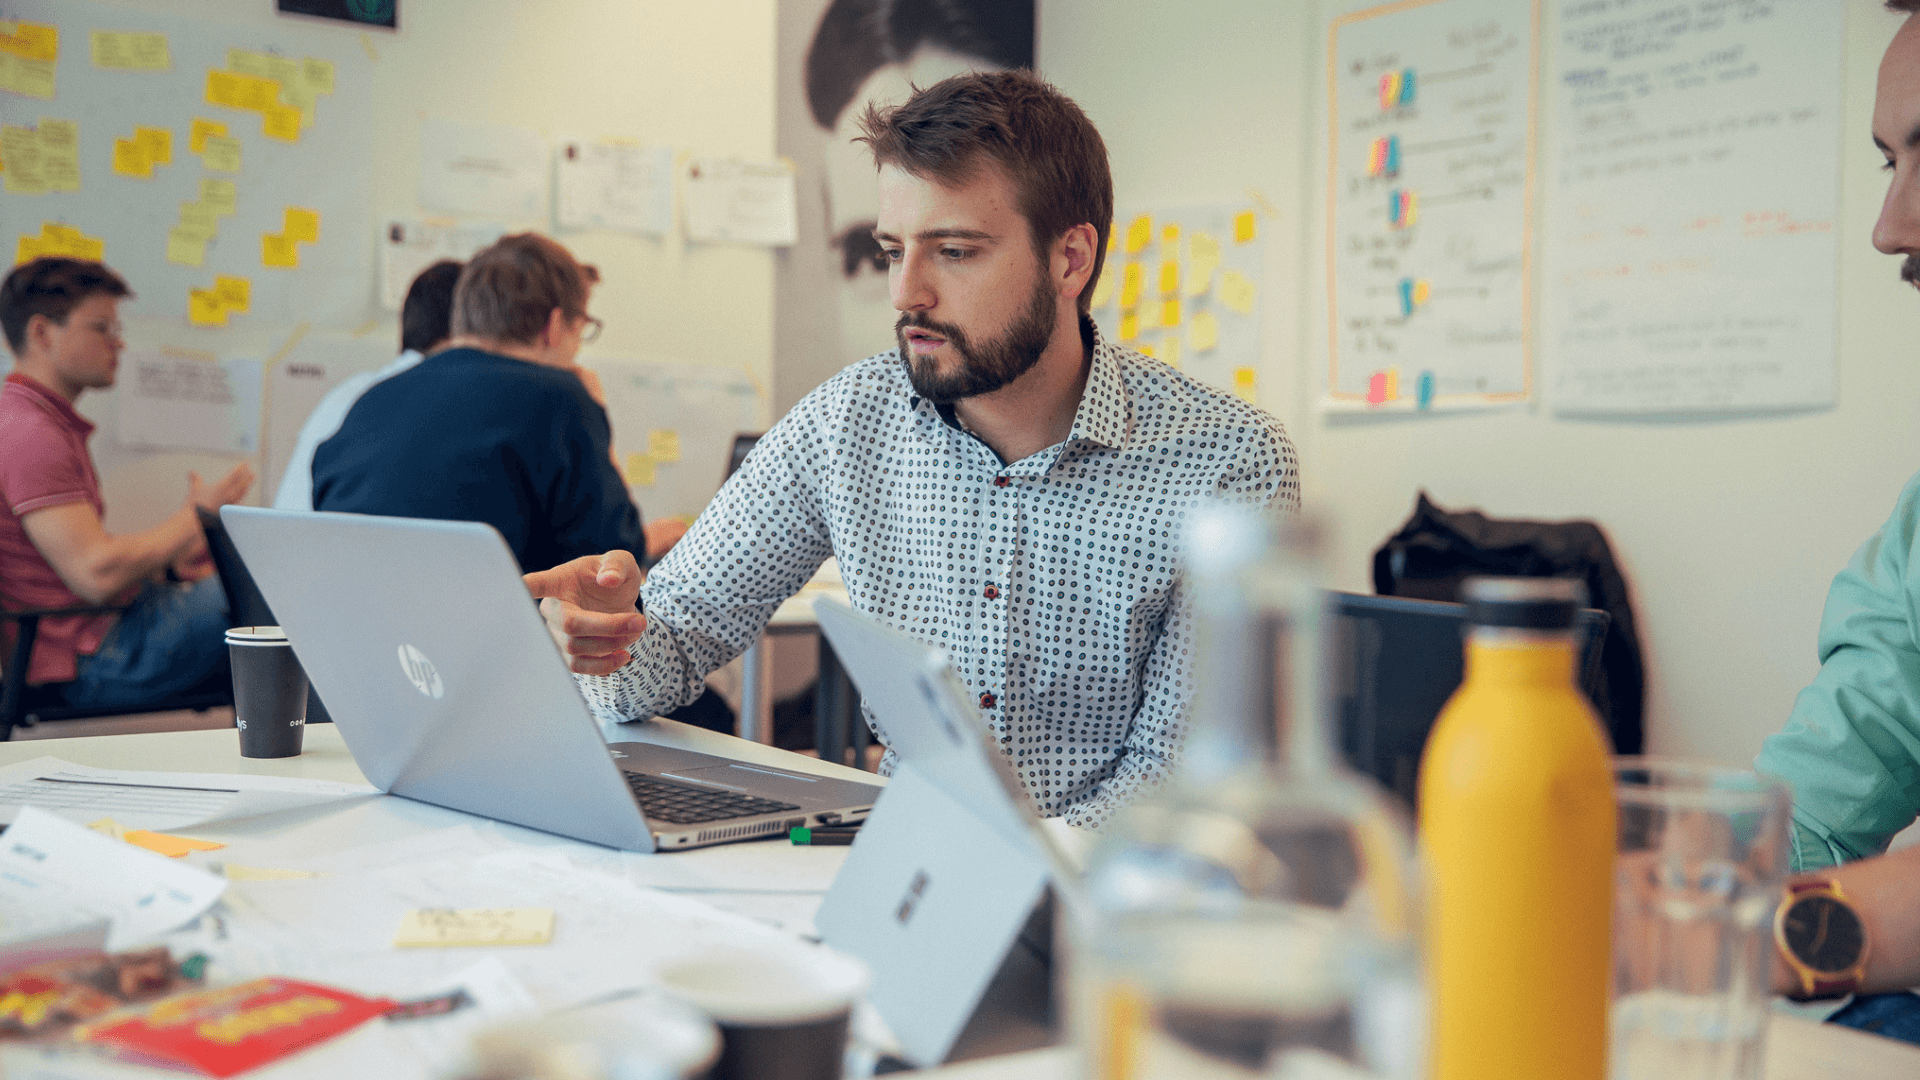 8 Things I wish I knew before I started my first job